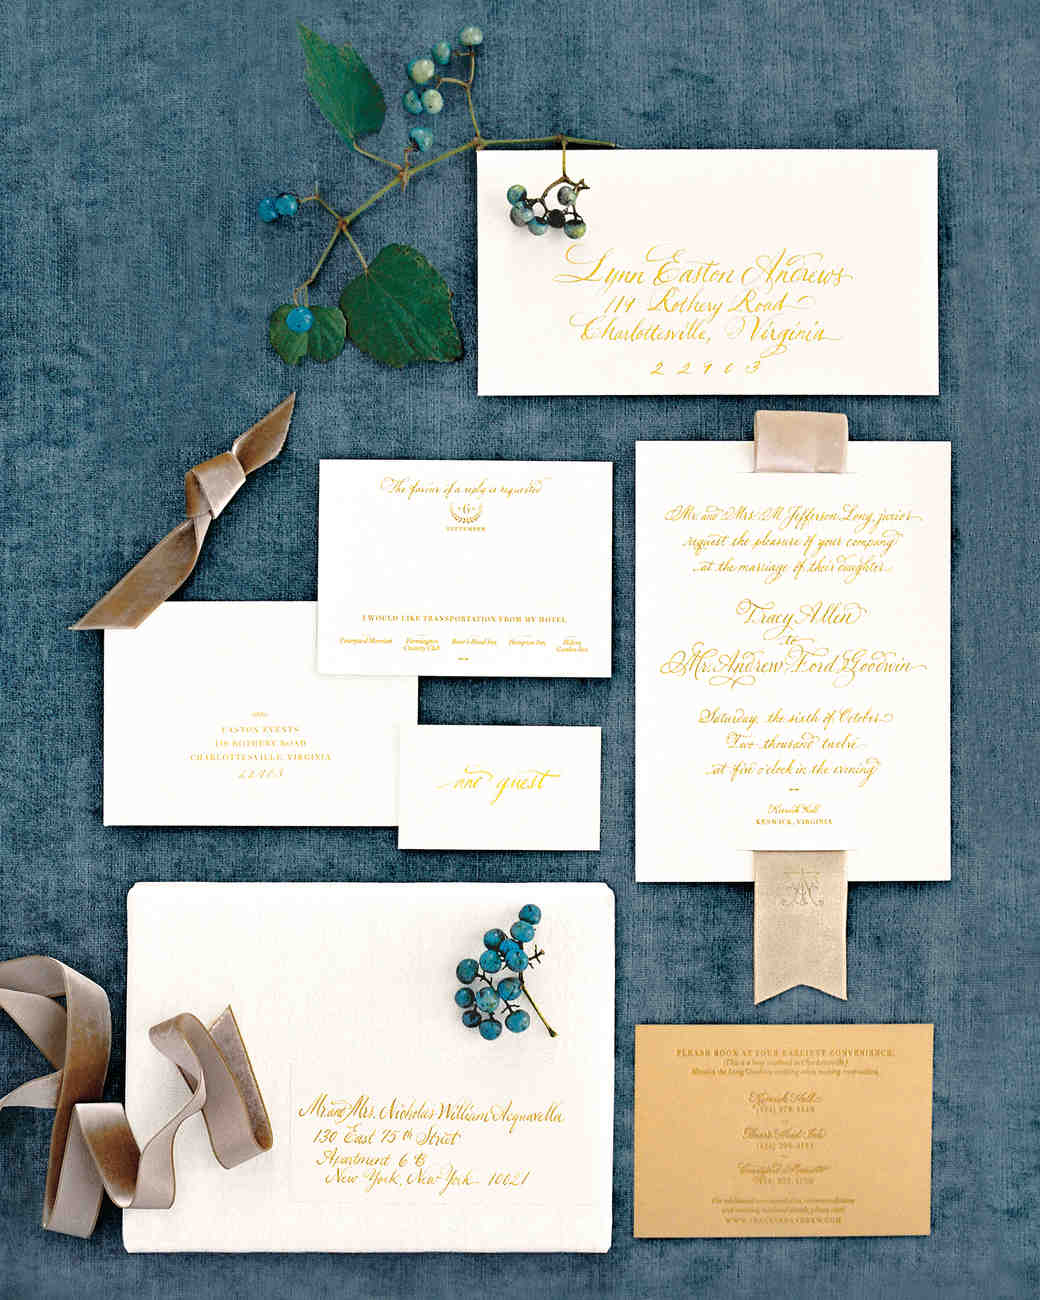 invitation-ribbon-004188-r1-01-5comp-mwds110148.jpg